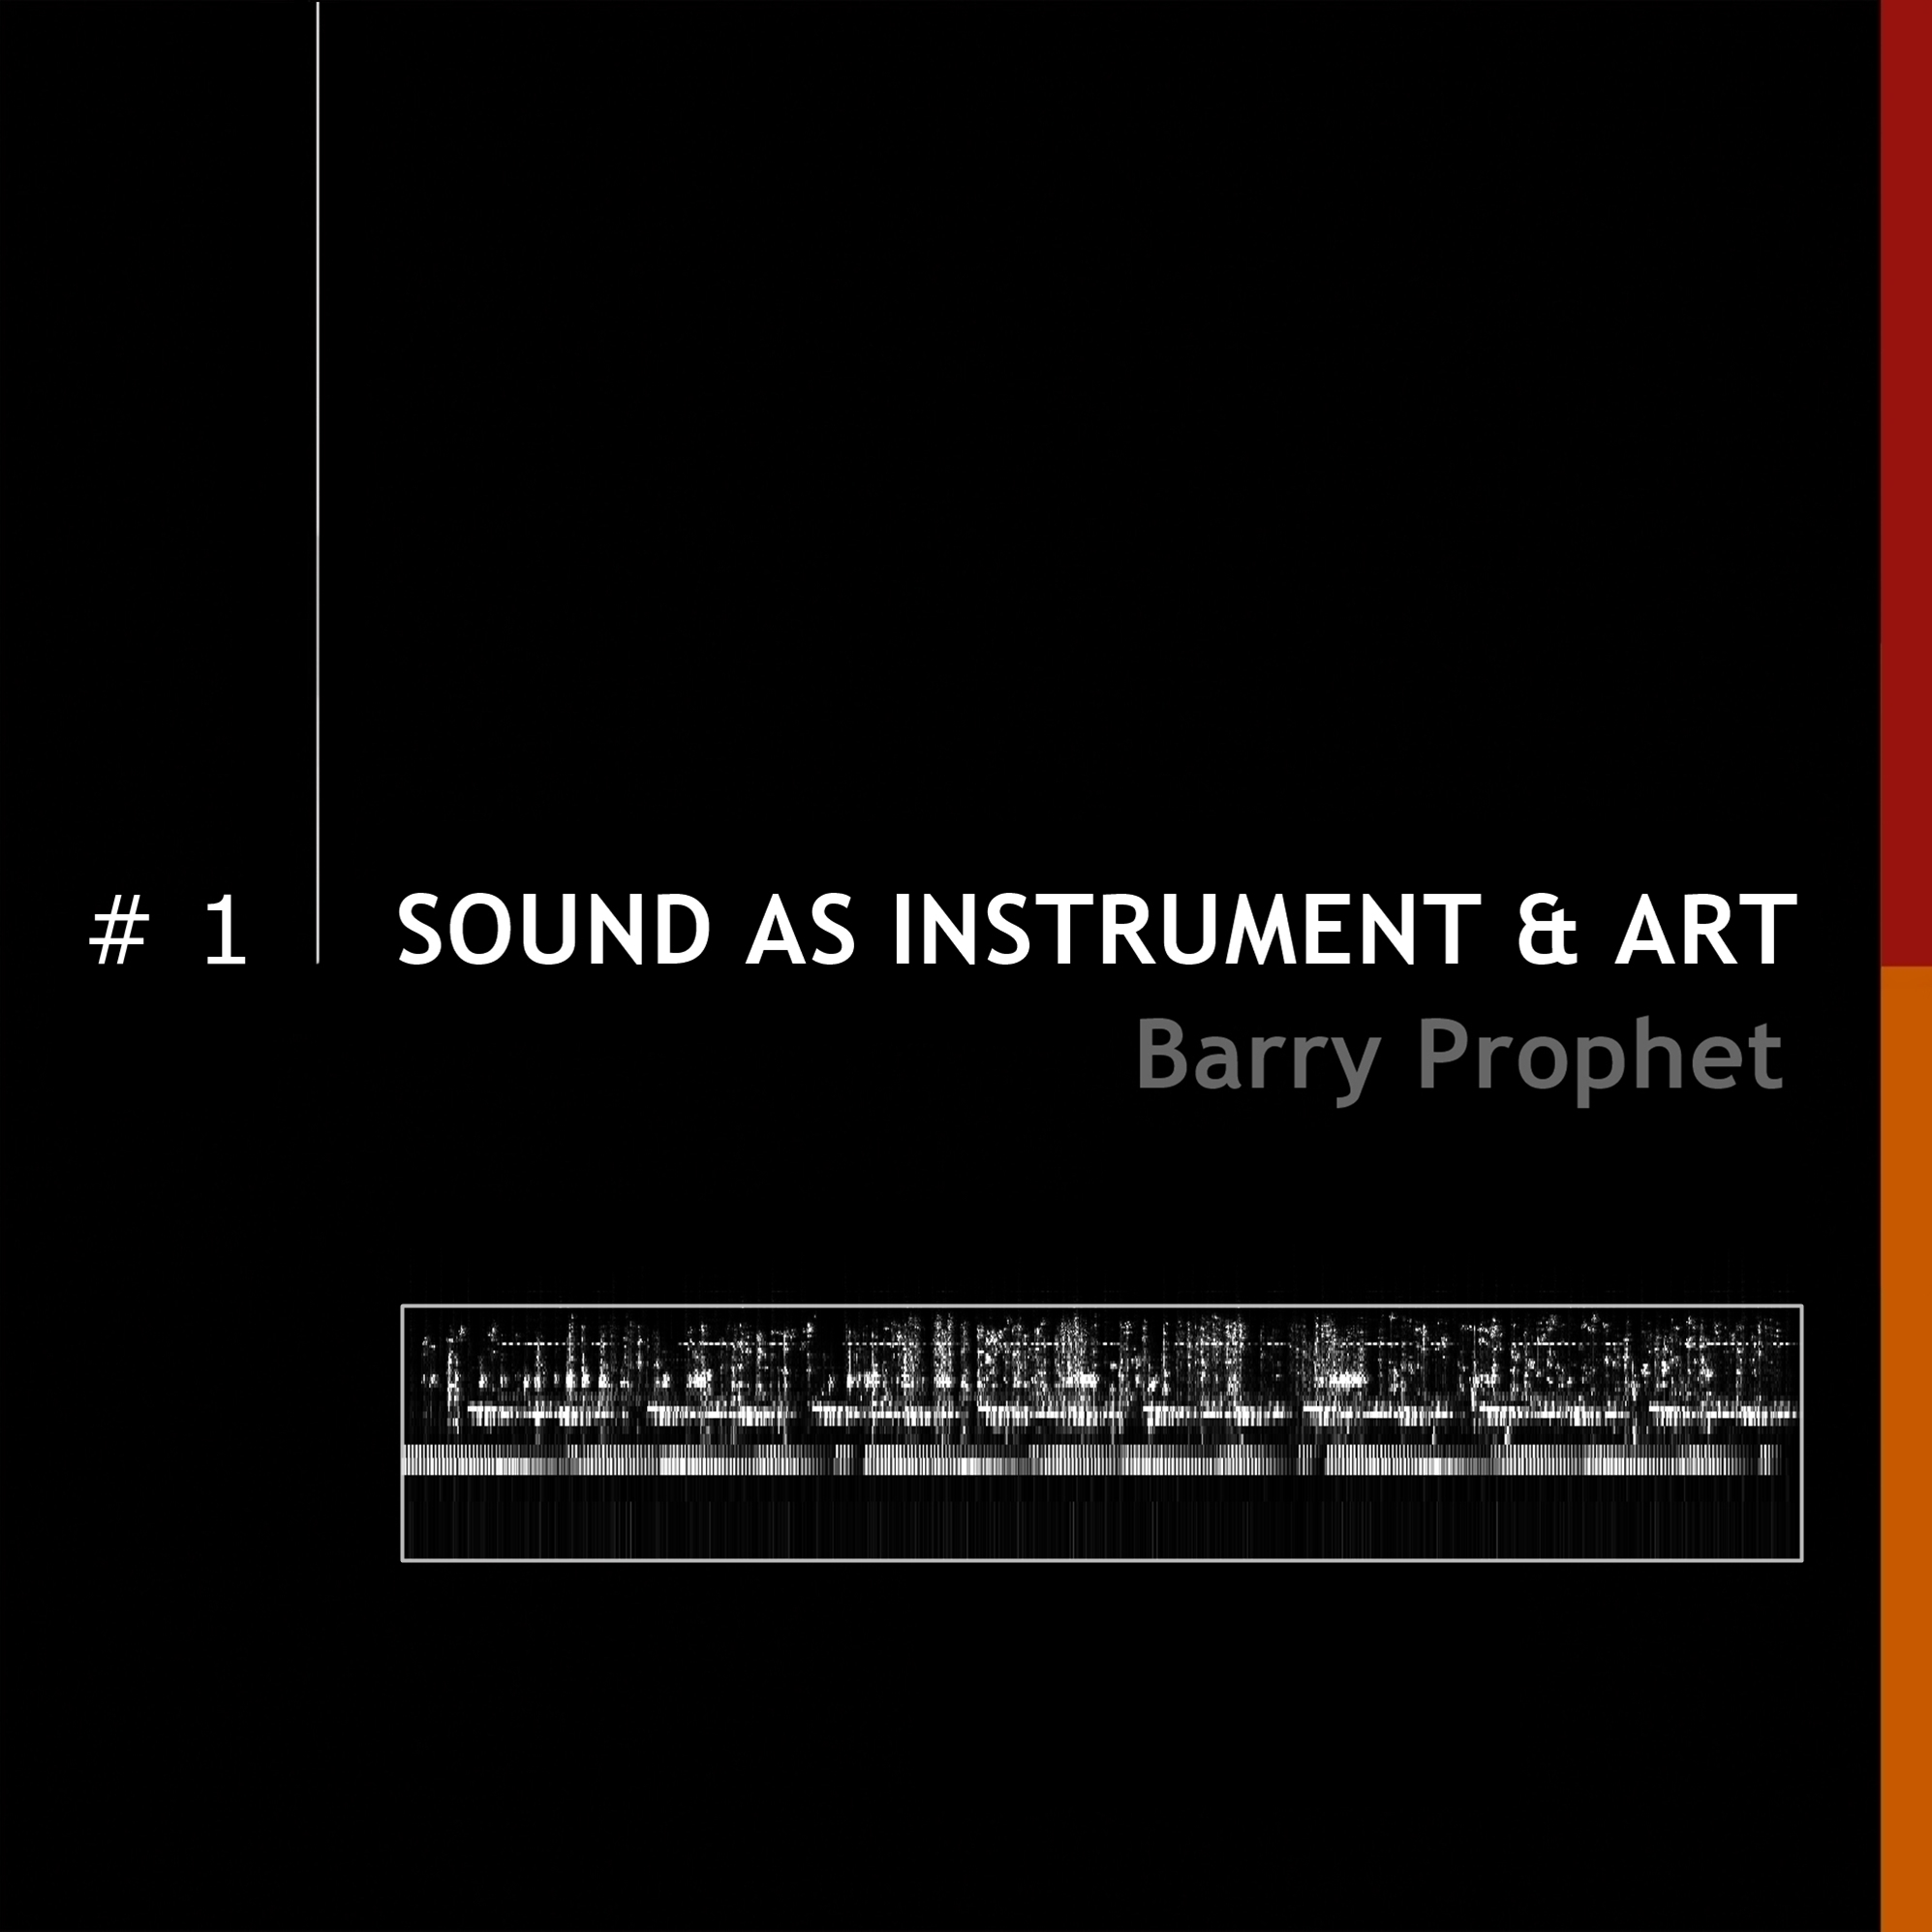 A Great New Release From Barry Prophet - 'Sound As Instrument & Art' Part #1